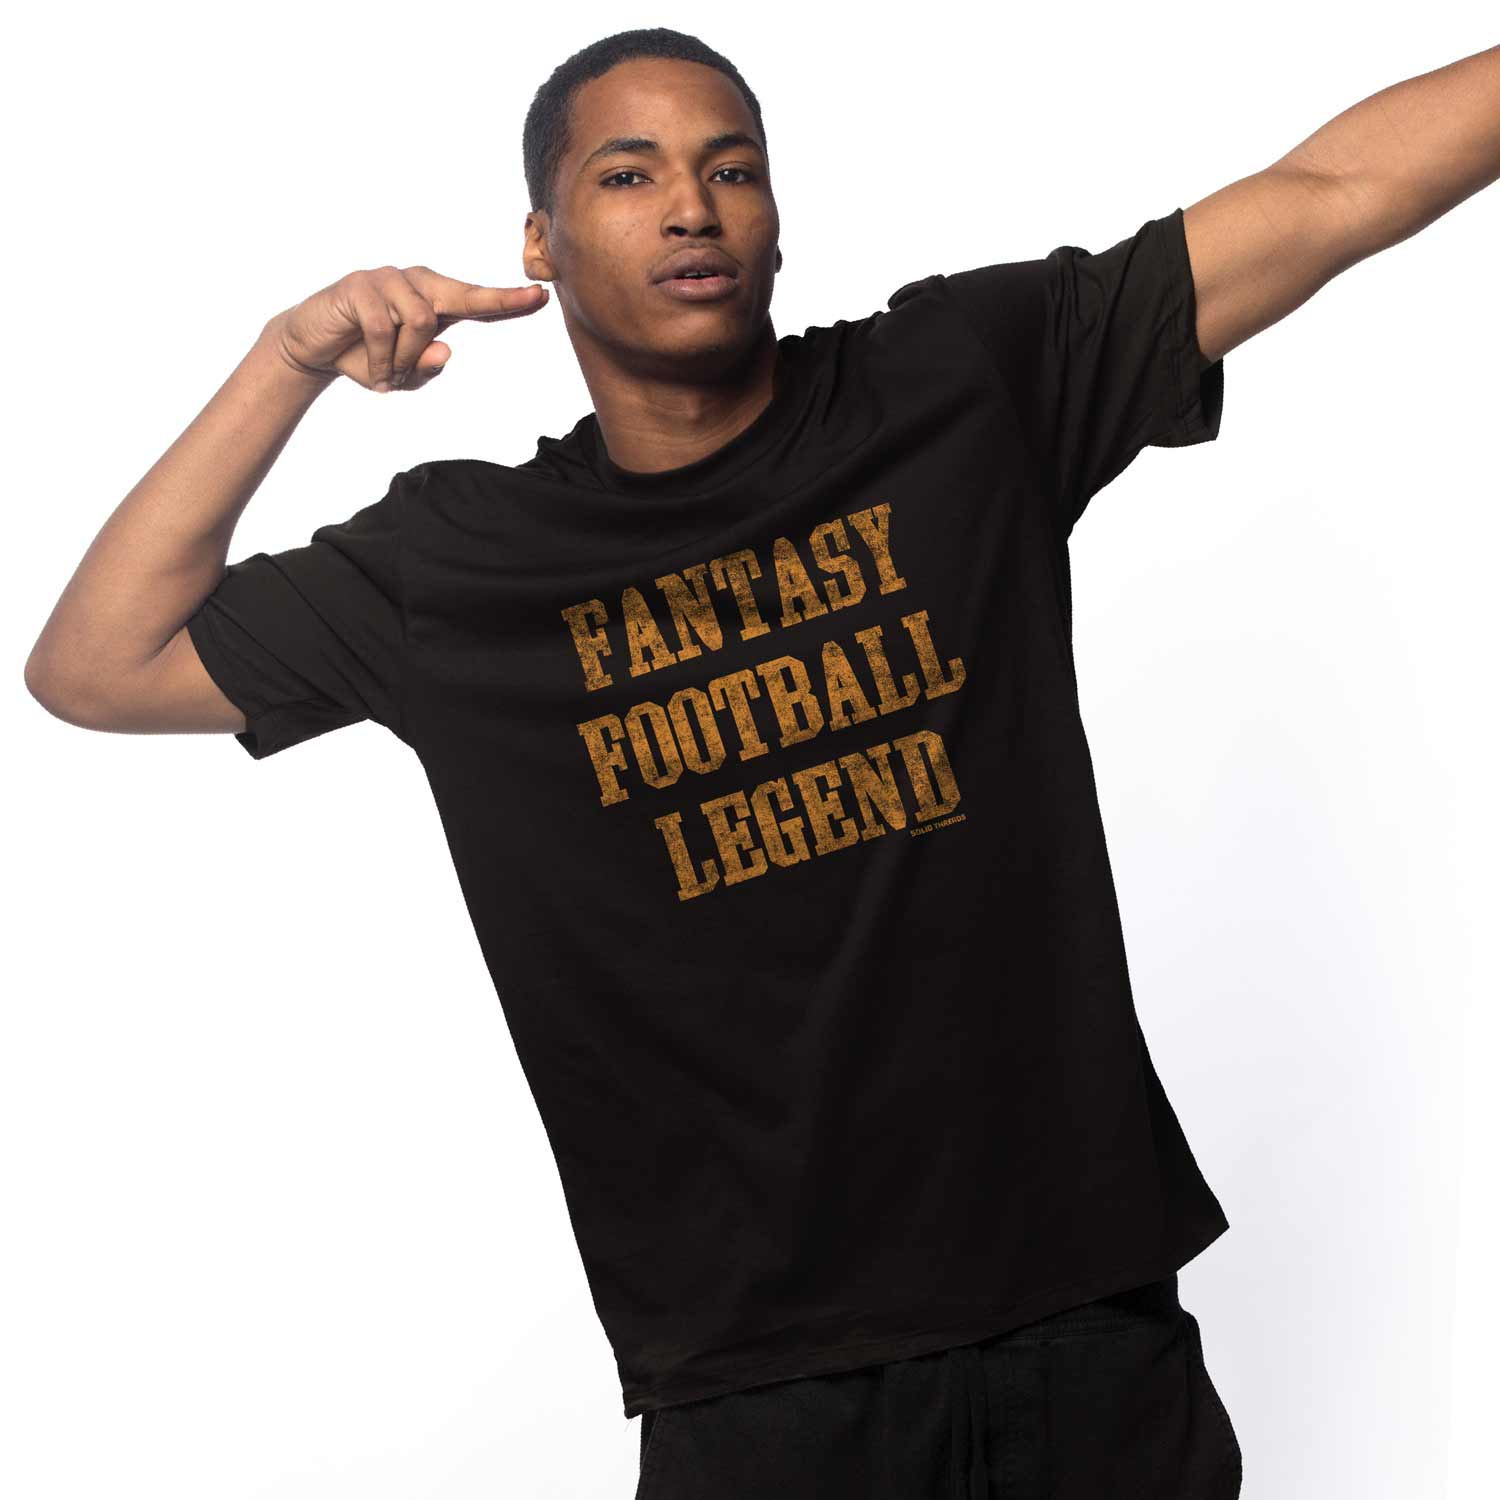 Men's Fantasy Football Legend Vintage Inspired T-shirt | Retro sports graphic tee | Solid Threads